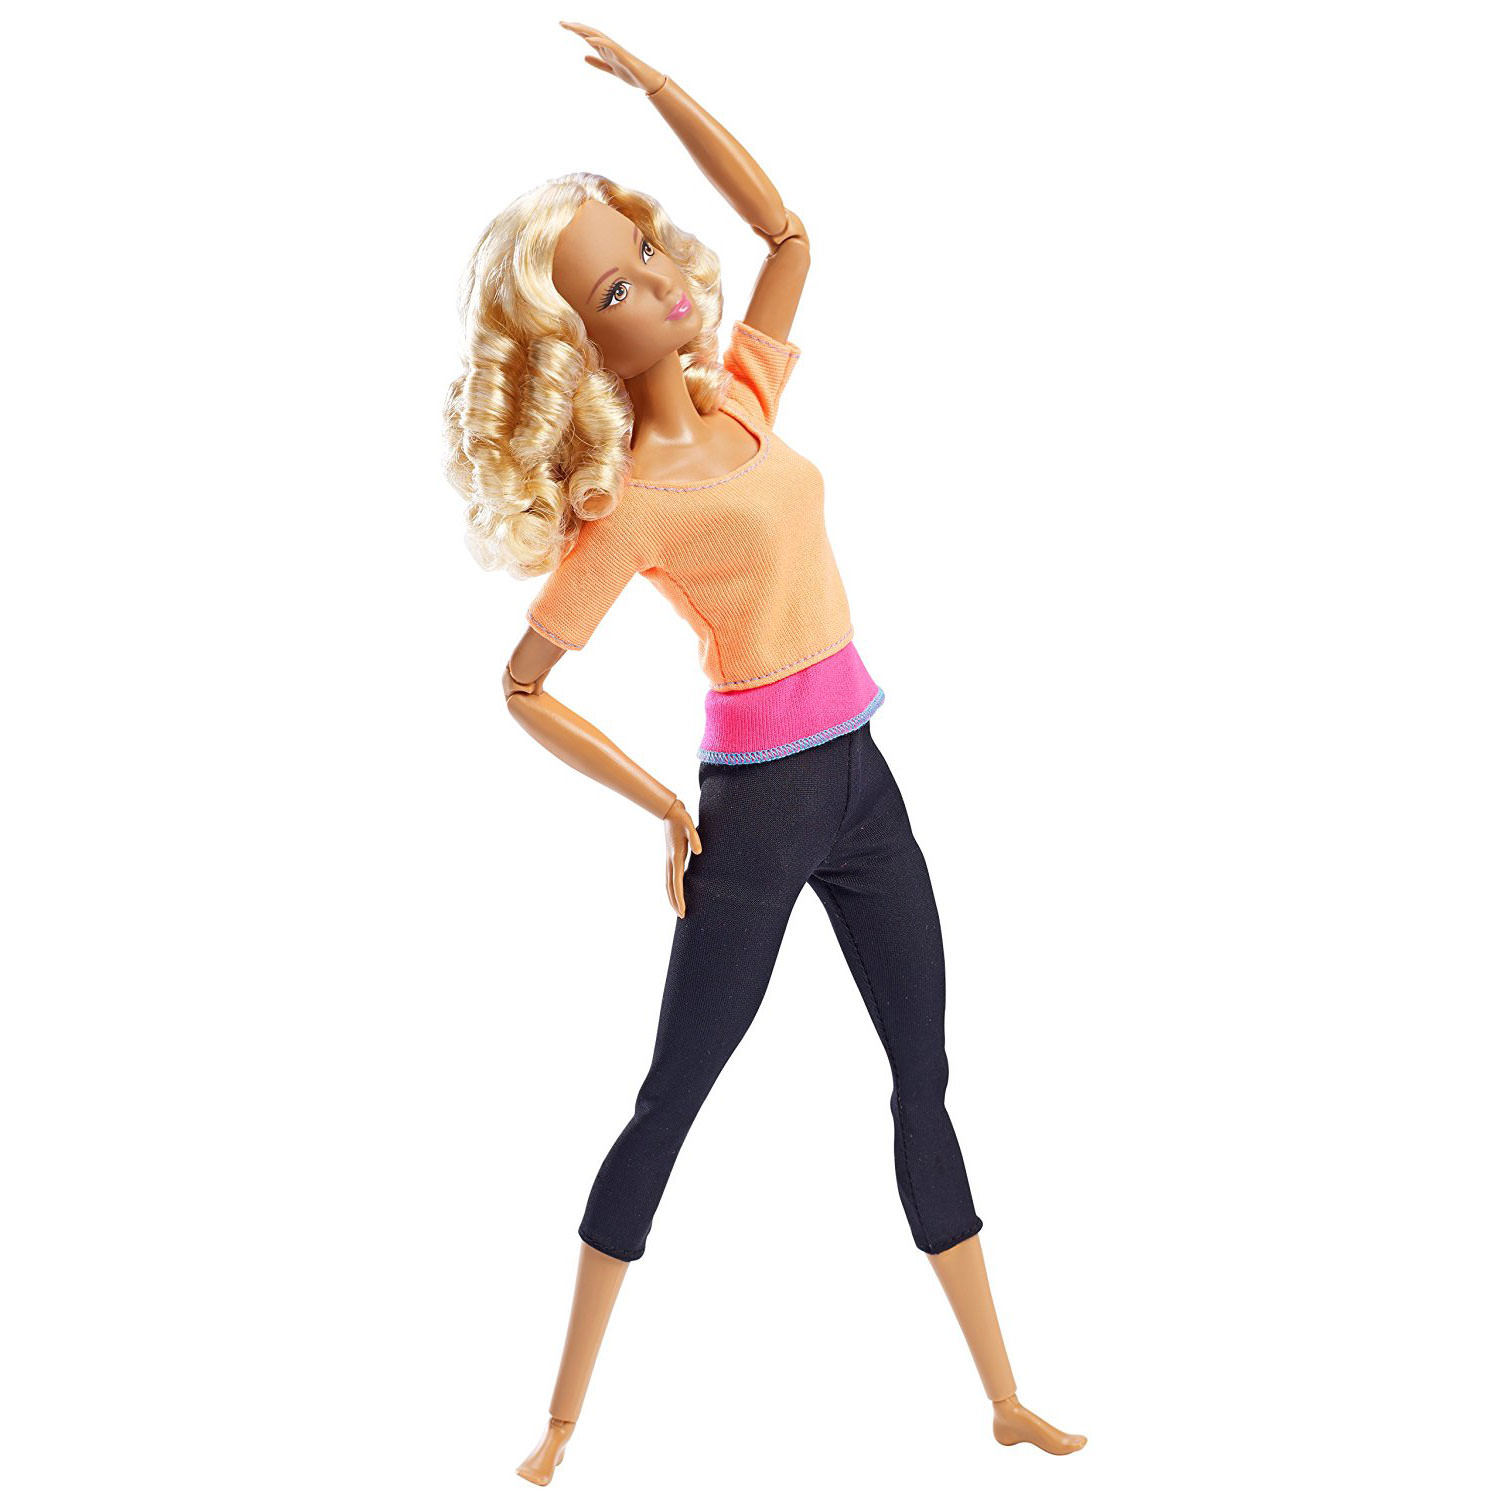 Barbie Made To Move Barbie Doll Orange Top At Hobby Warehouse